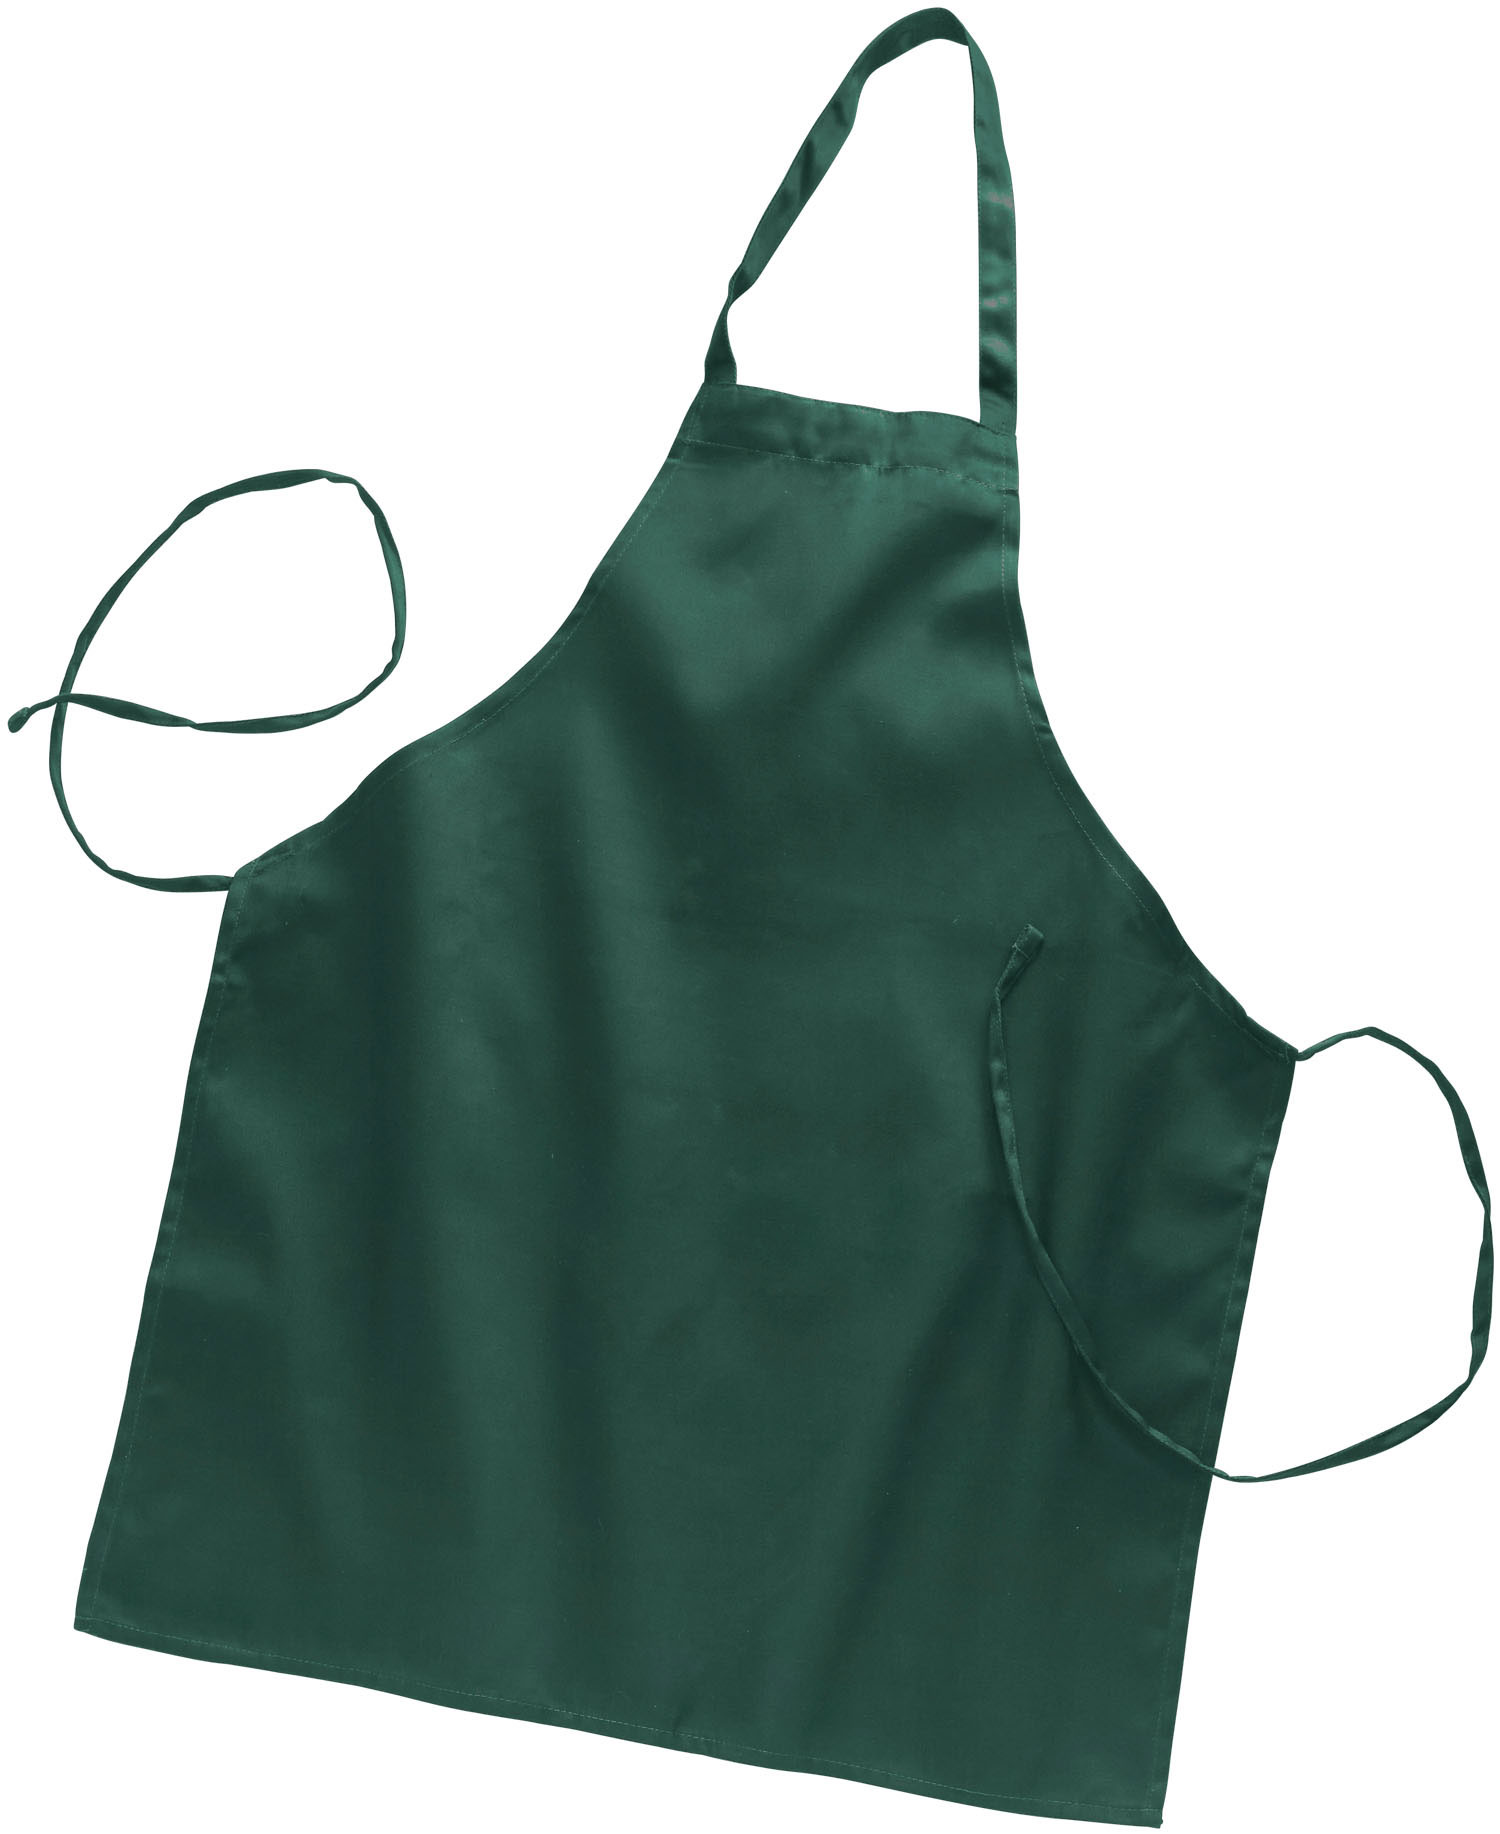 Q-Tees of California - Q2010 Butcher Apron